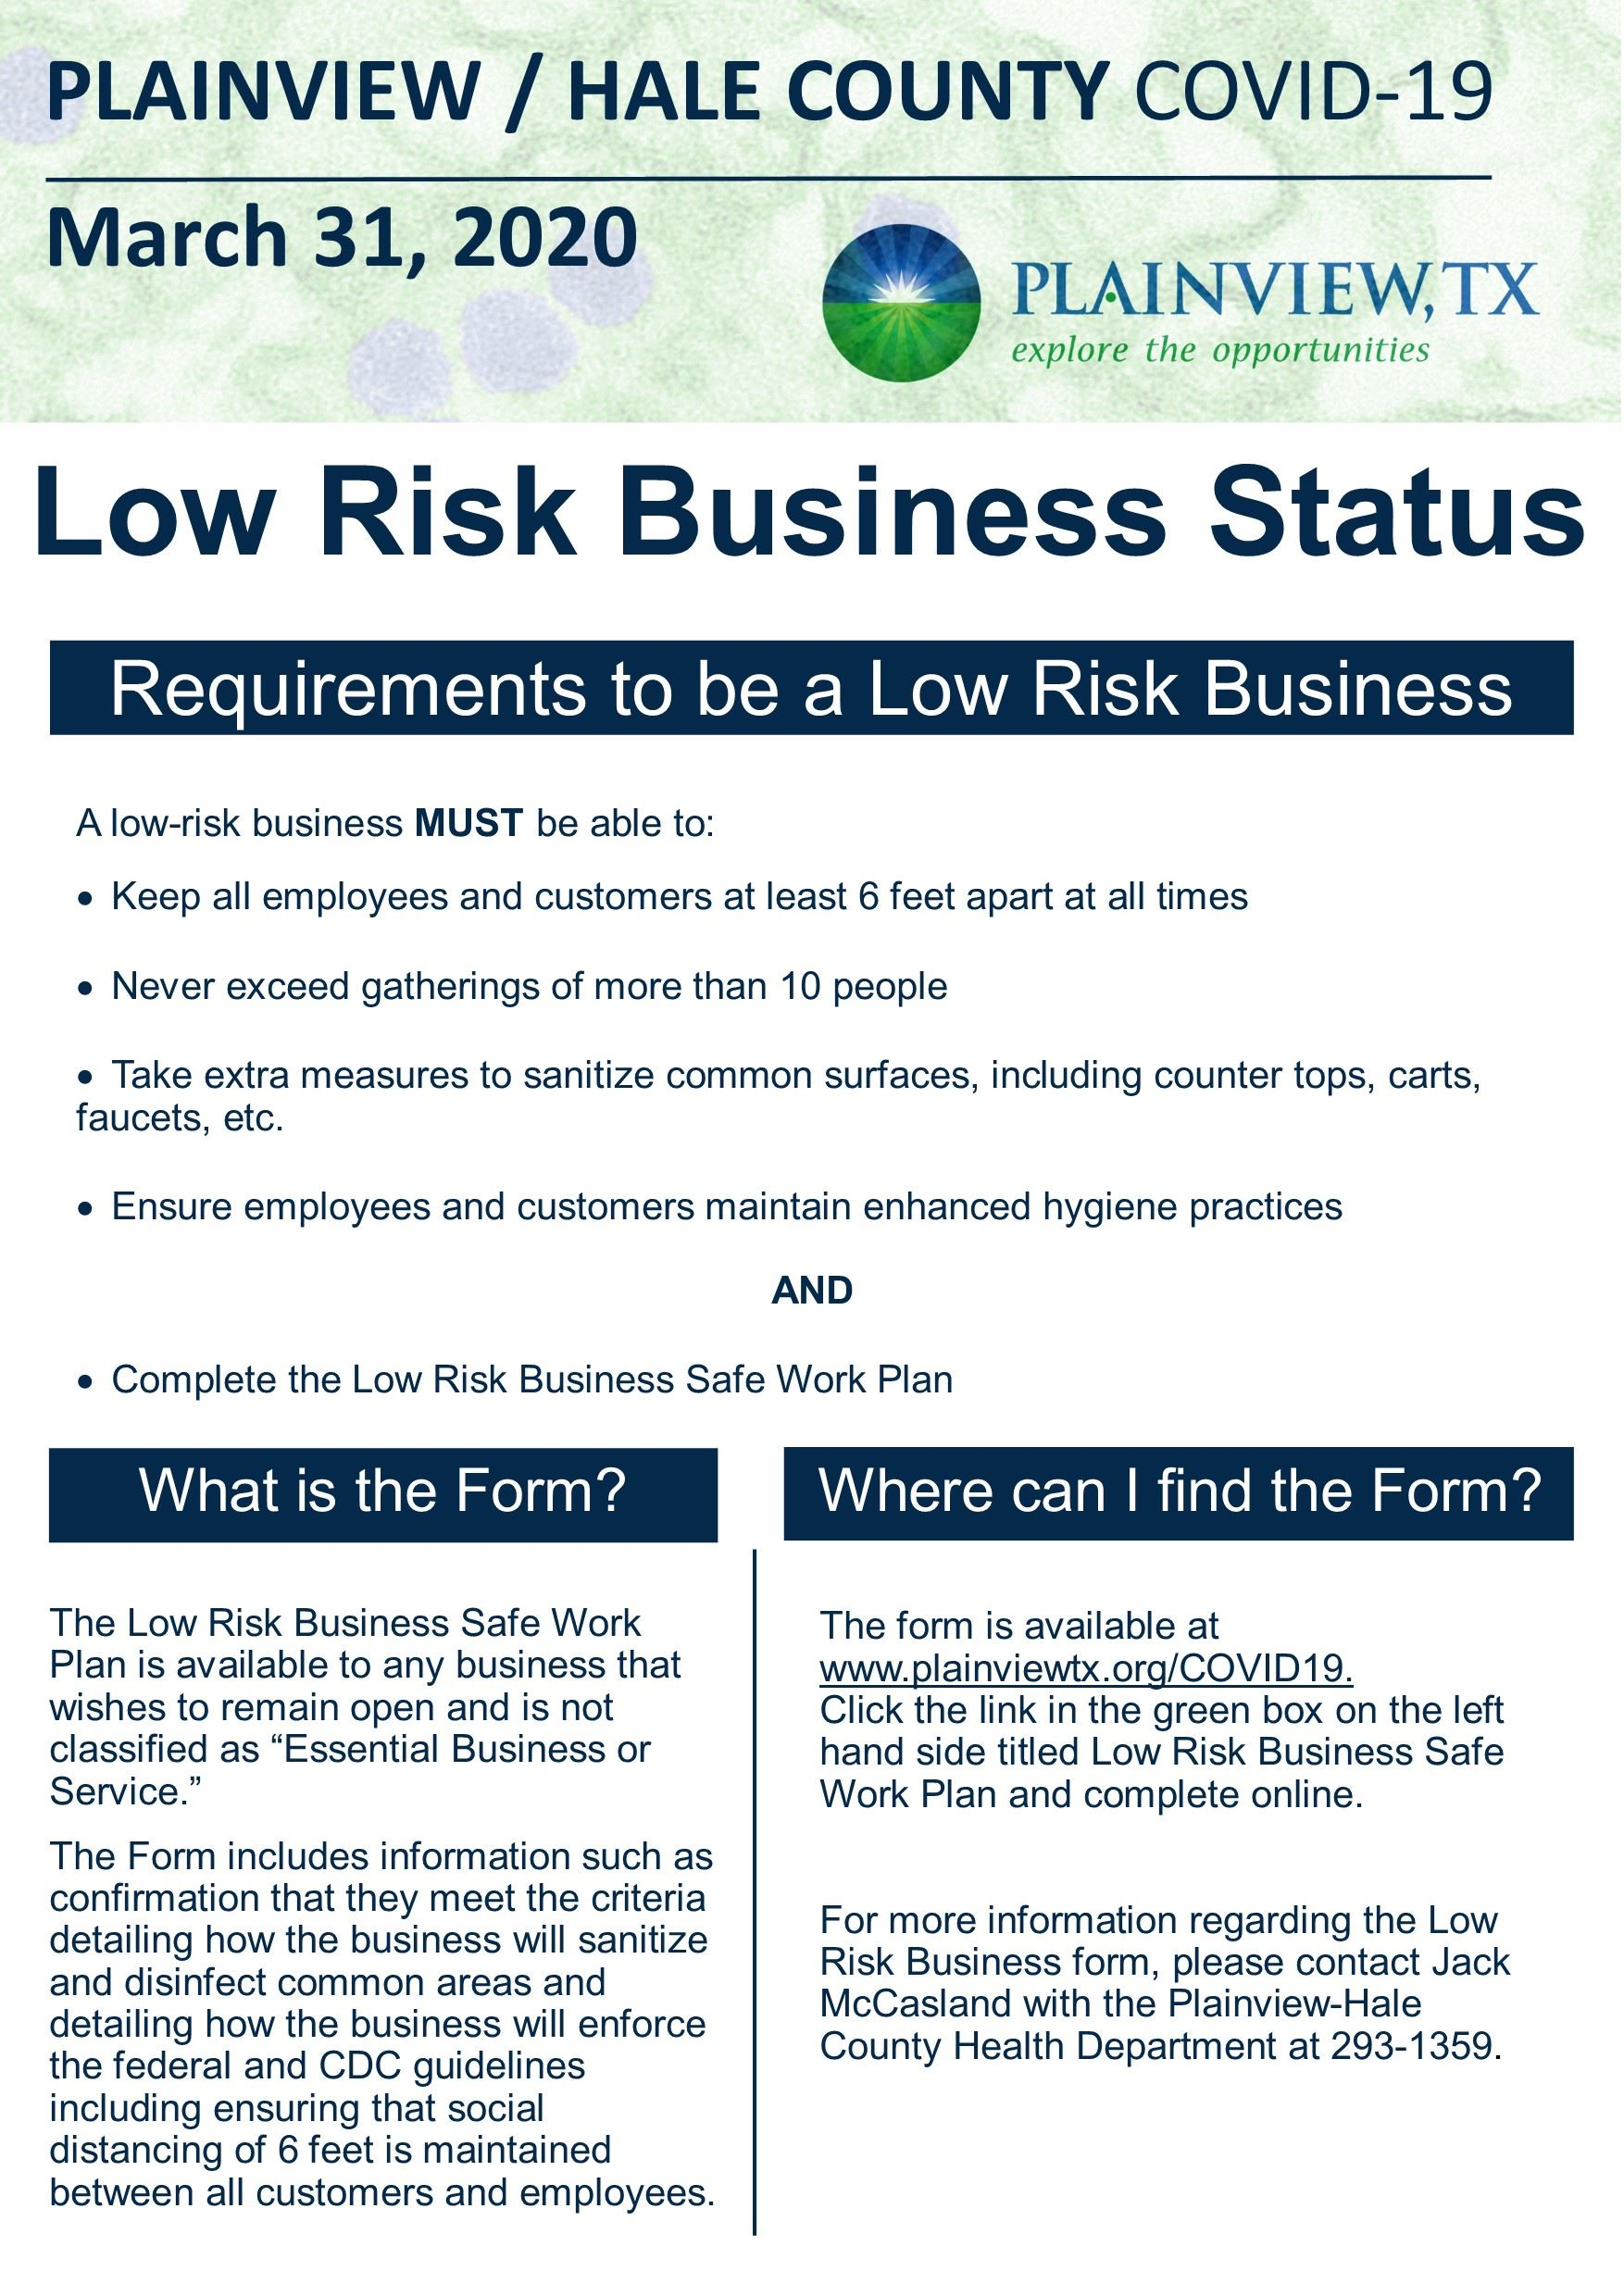 Low Risk Businesses